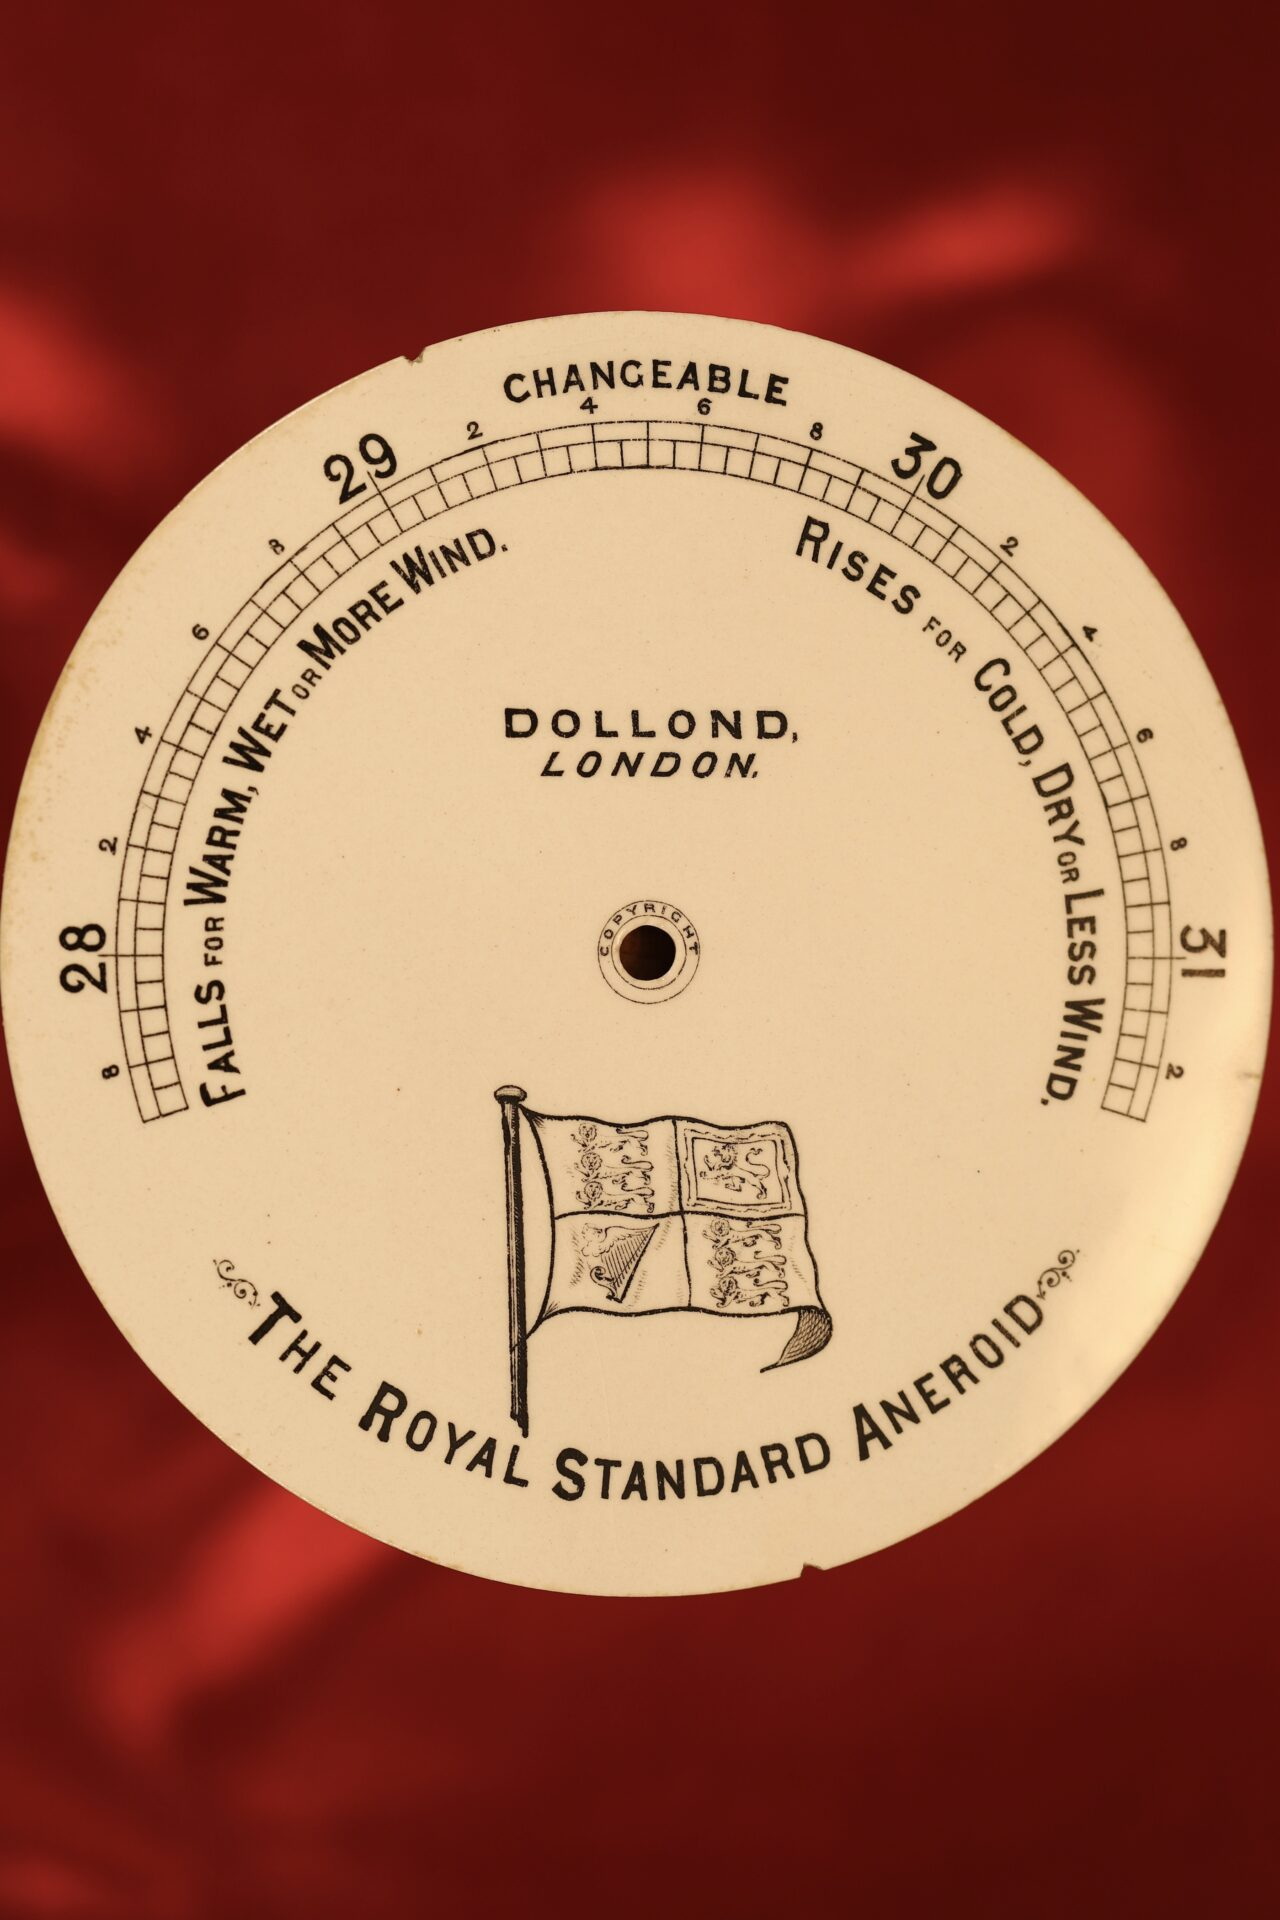 Image of dial alone for Dollond Royal Standard Marine Barometer c1880